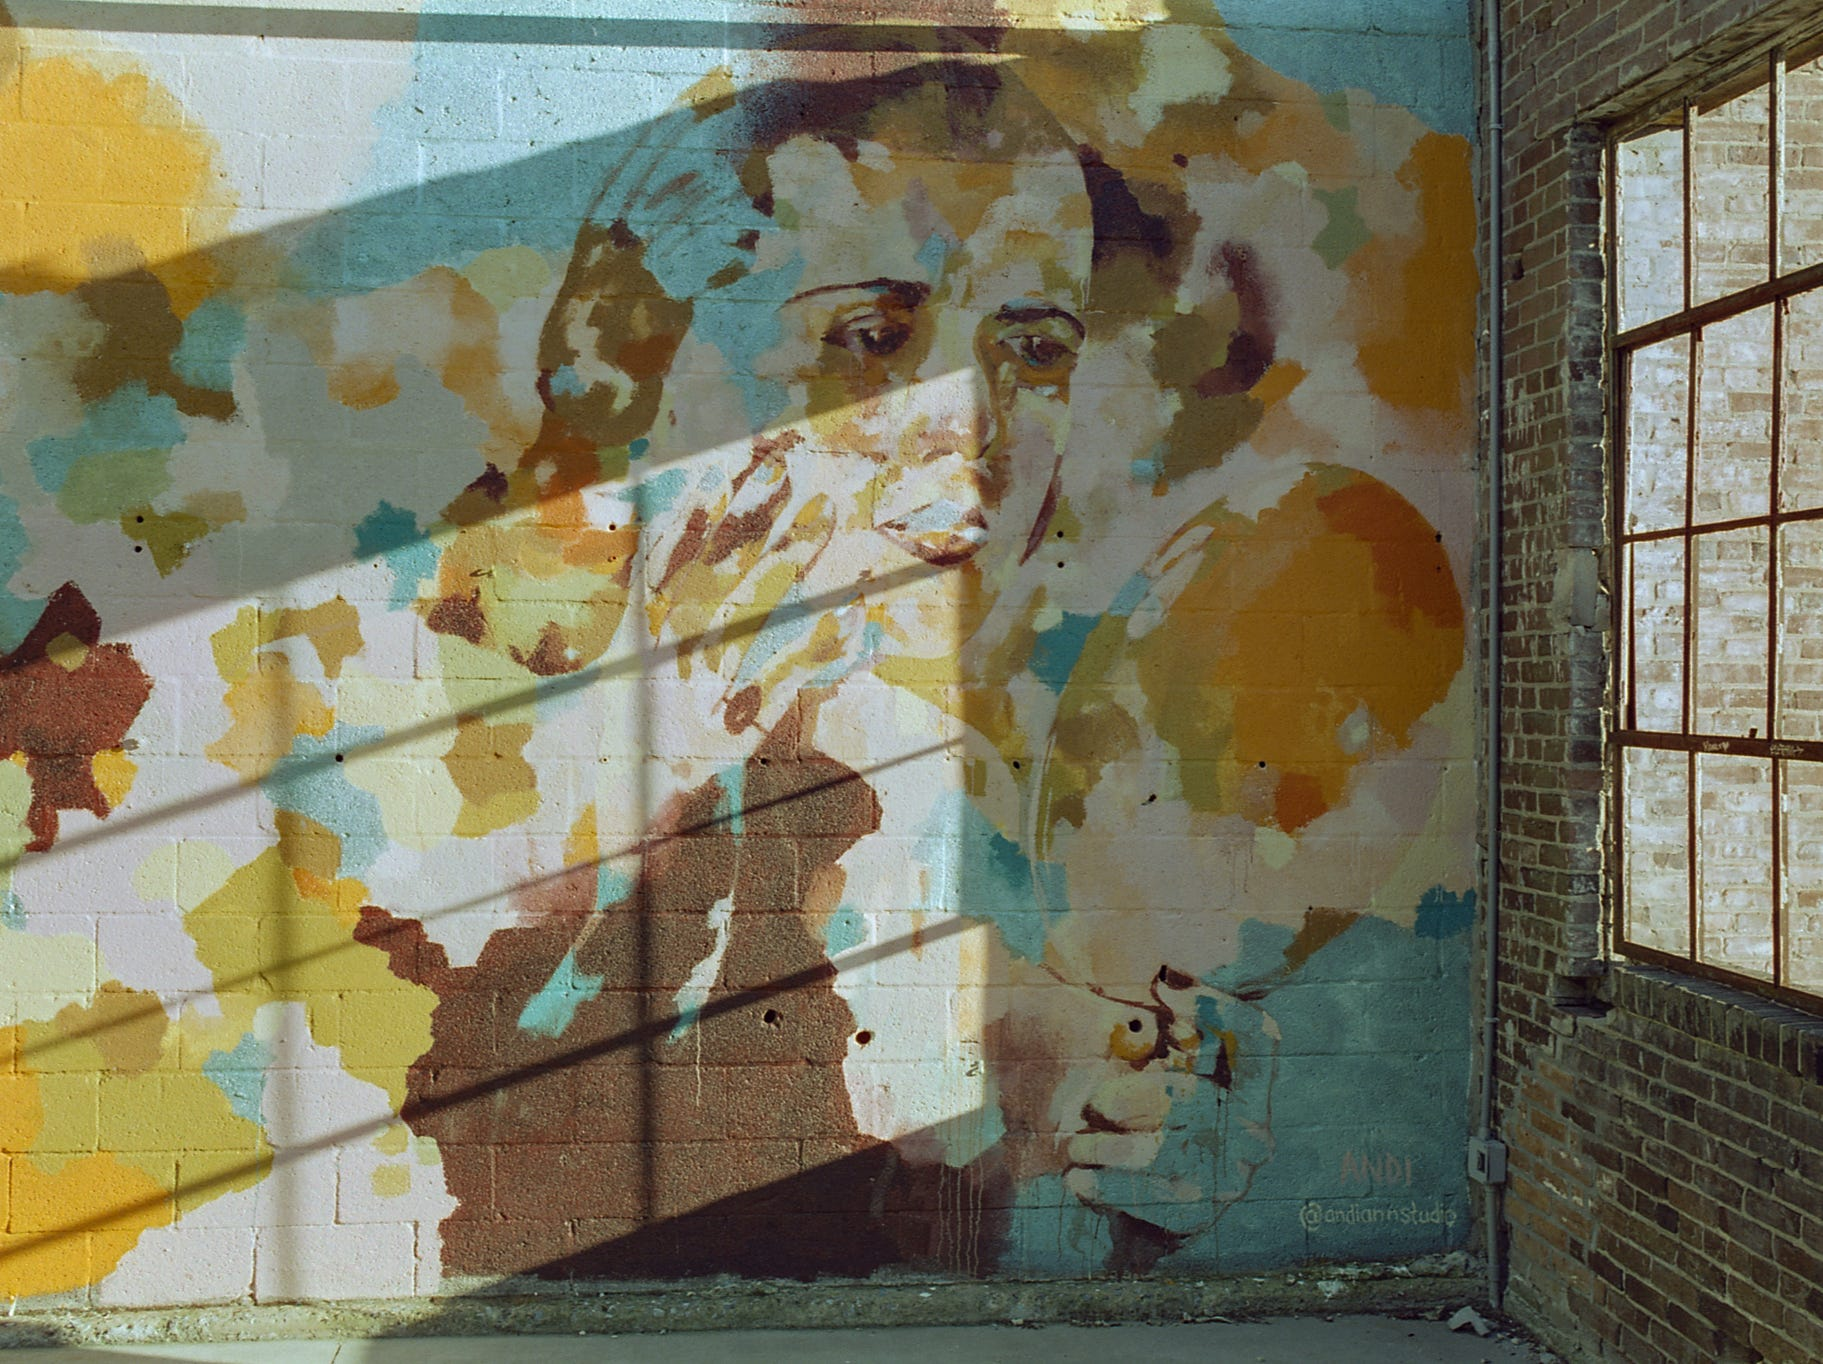 A mural at The Bond in the Royal Square district [Pentax KX] [CineStill 50D]